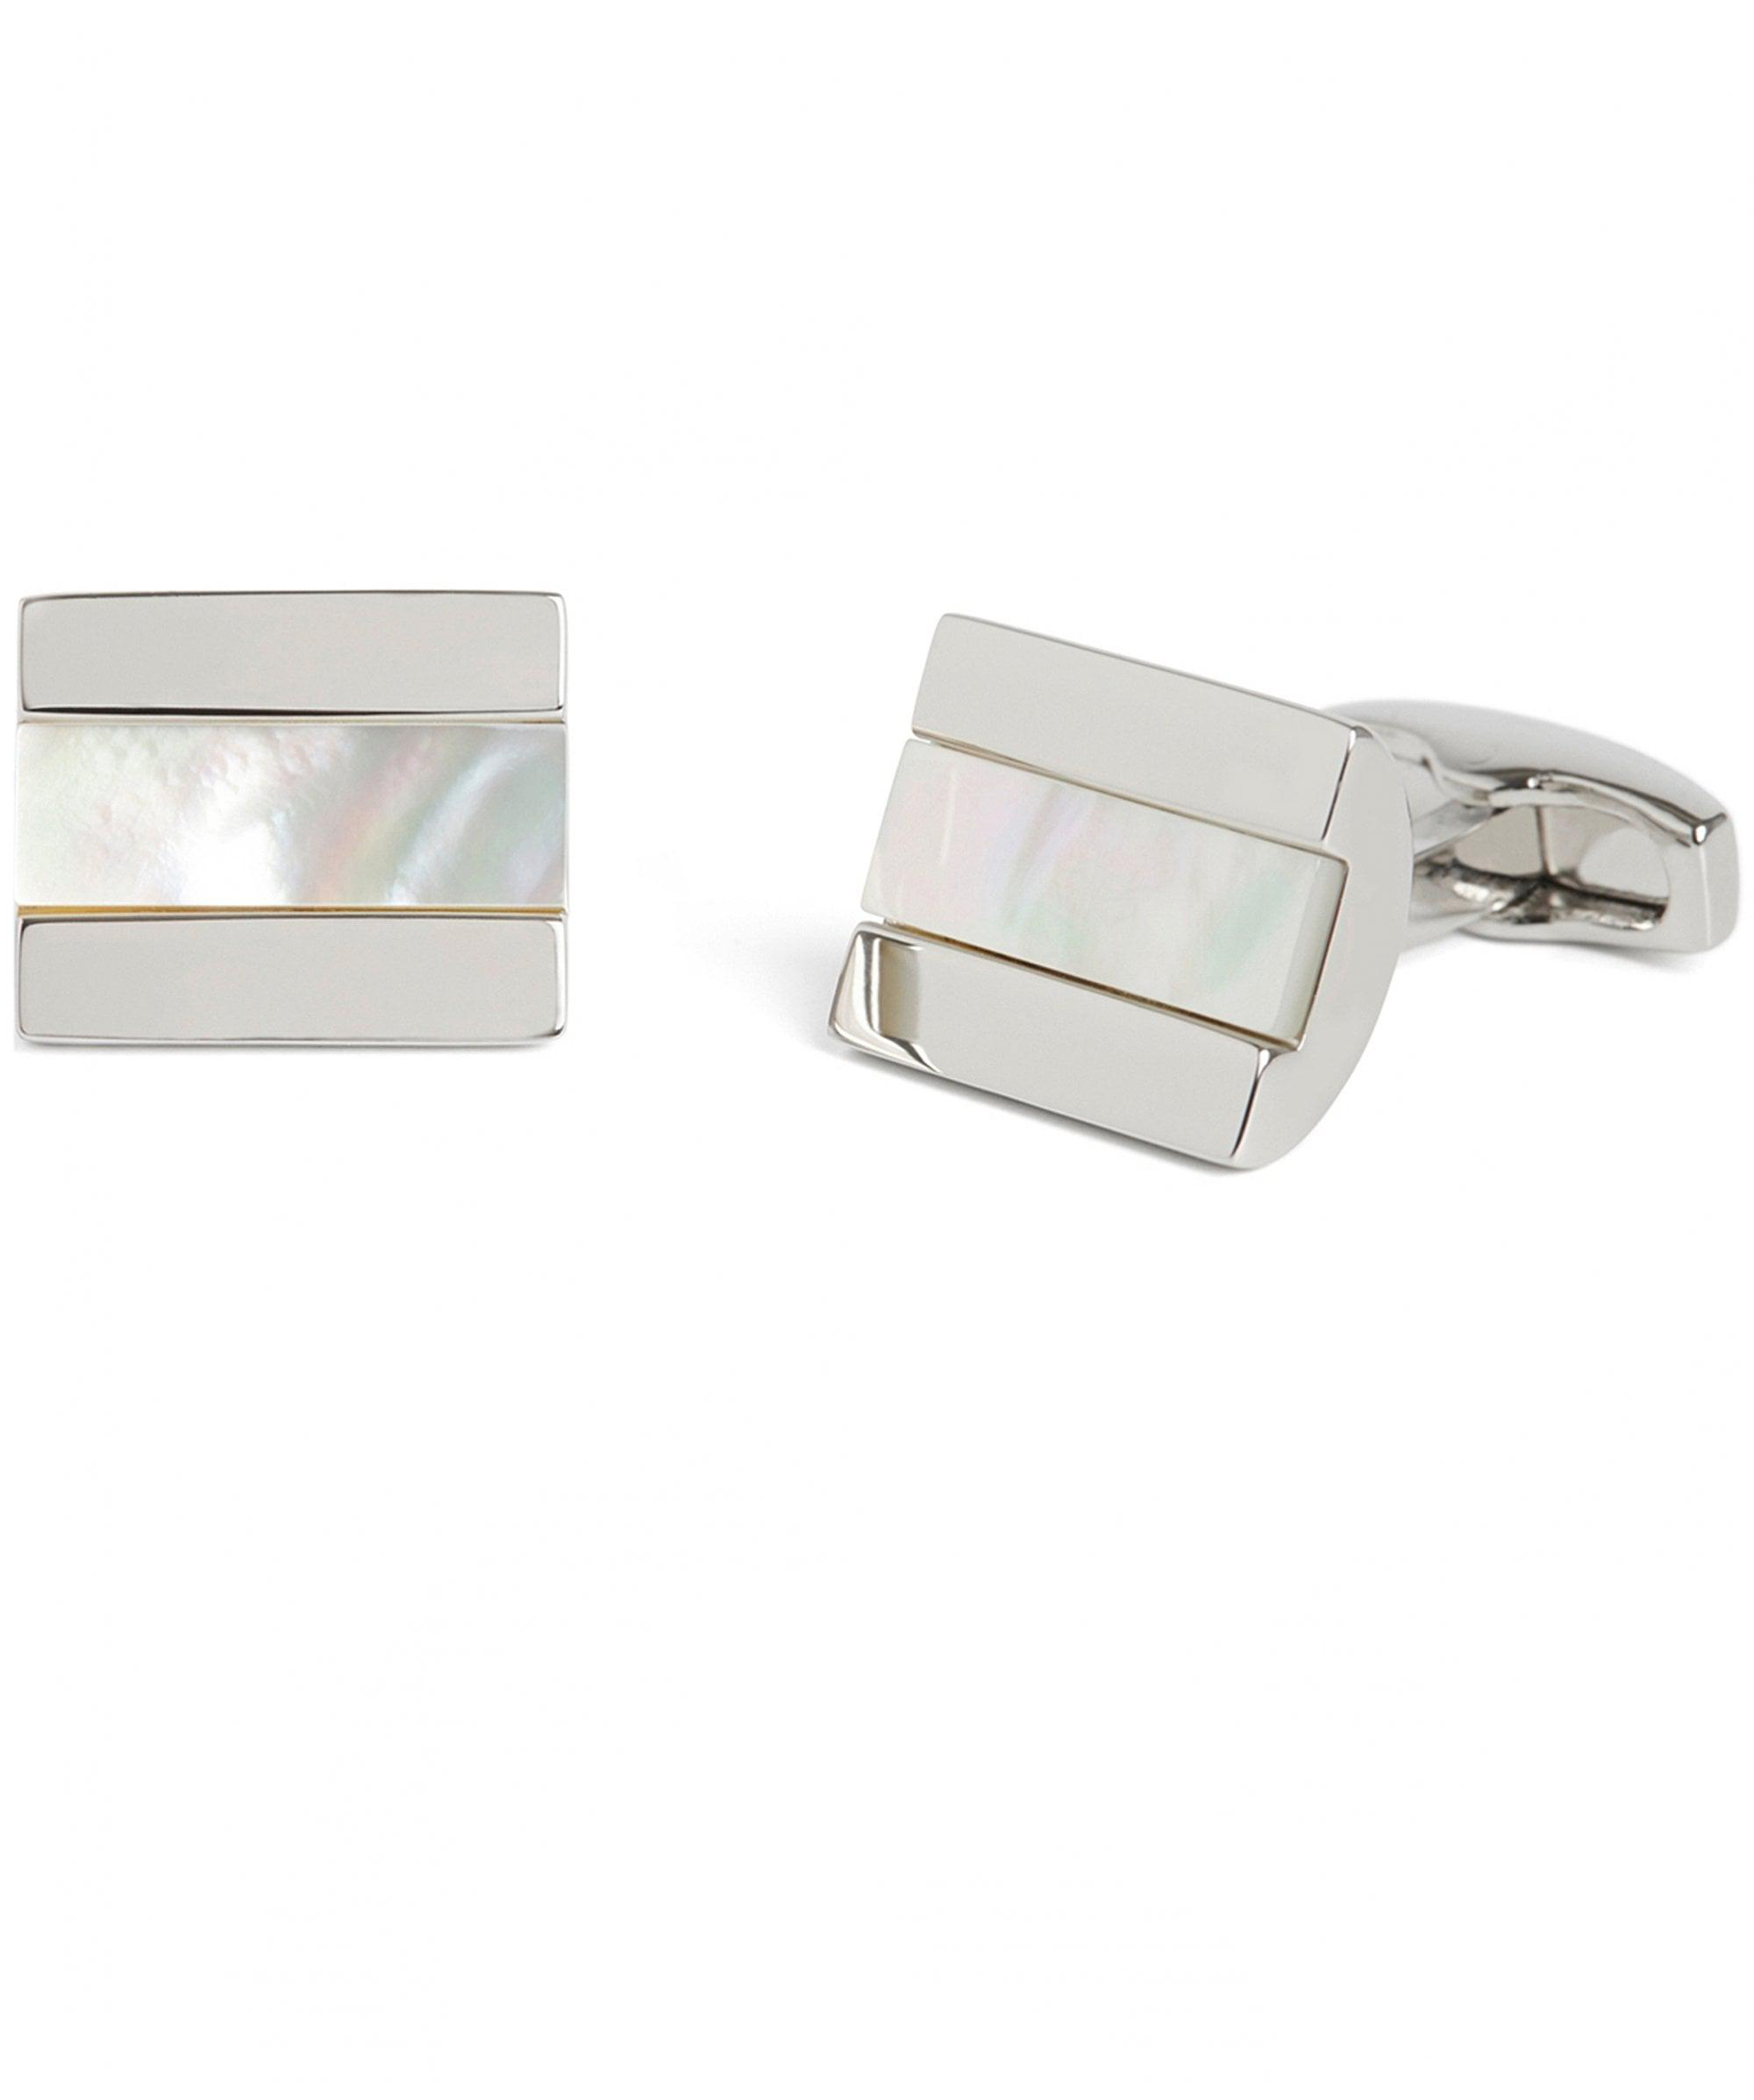 0fd6db45e Simon Carter Chunky Half Barrel Cufflinks in White for Men - Lyst